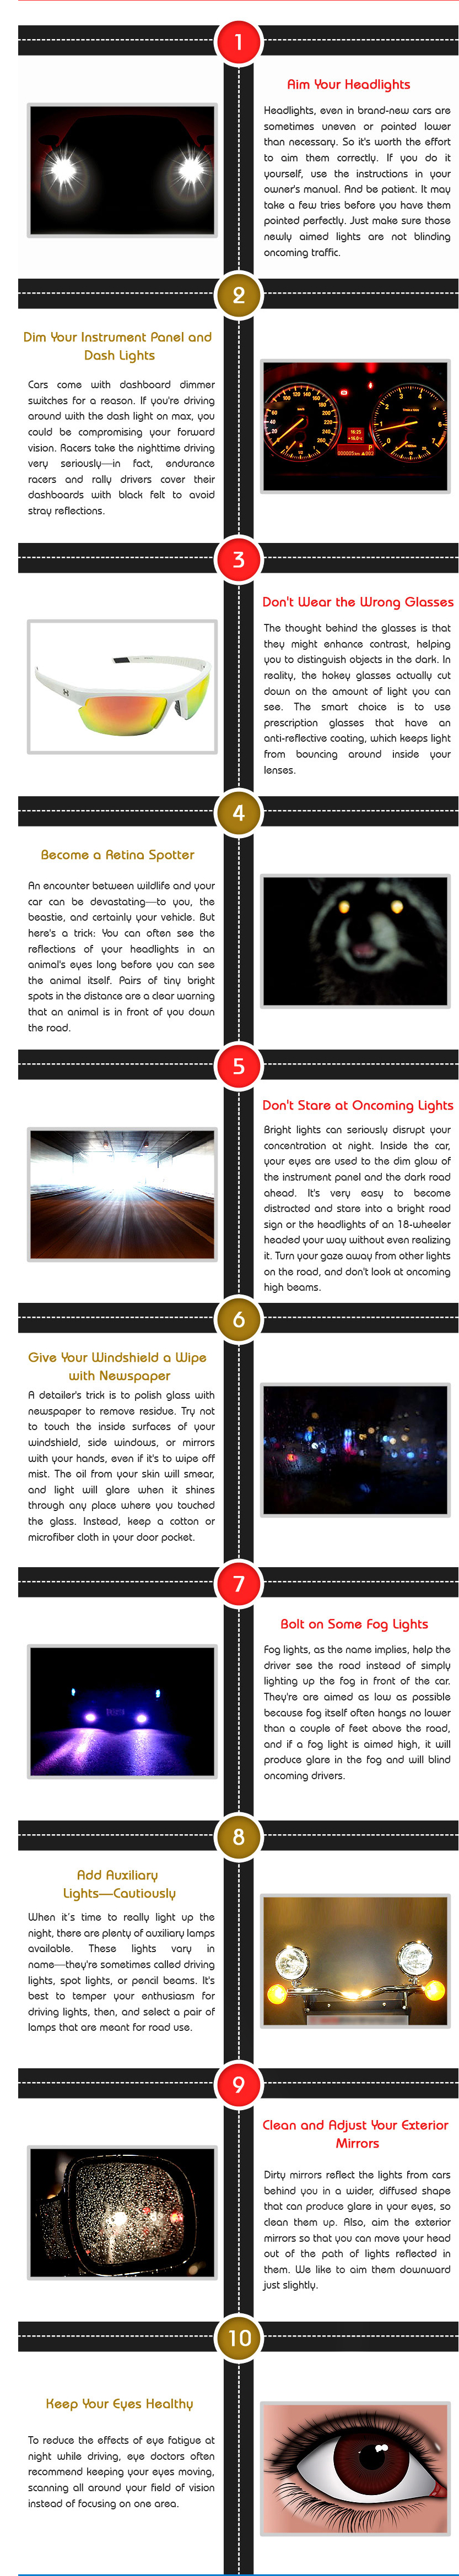 Tips-to-Improve-Your-Night-Driving